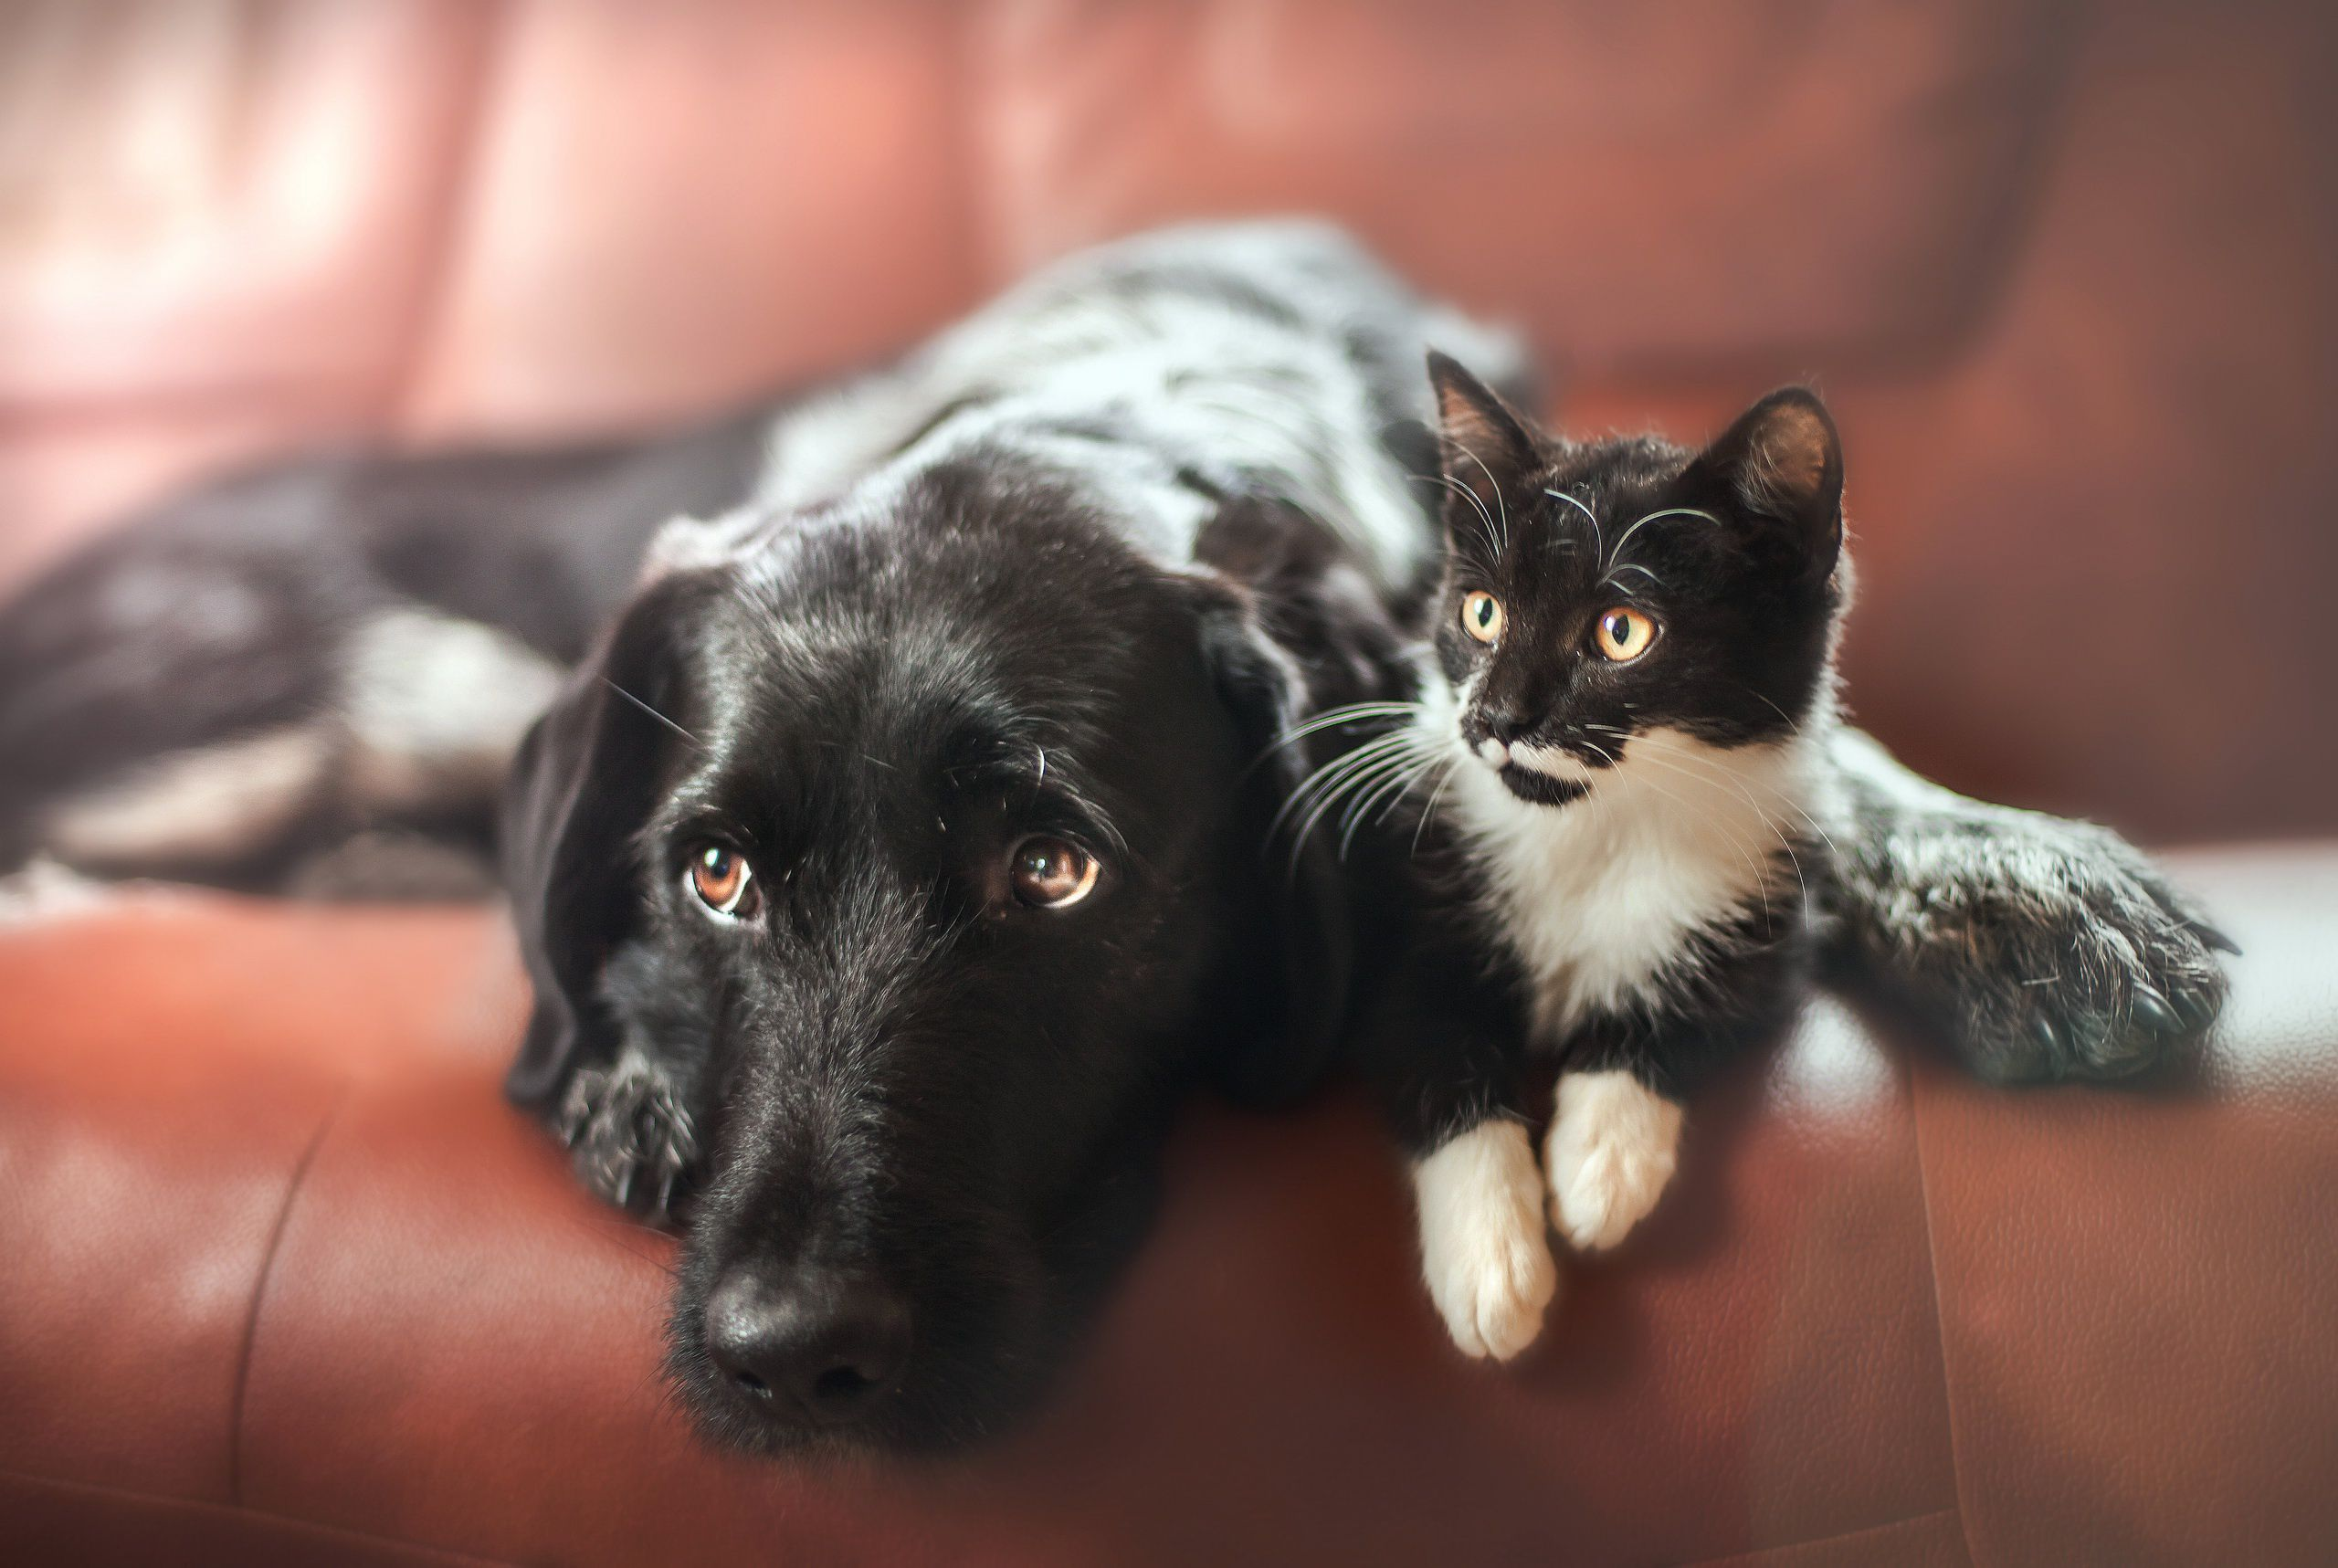 Cat & Dog Wallpapers Backgrounds